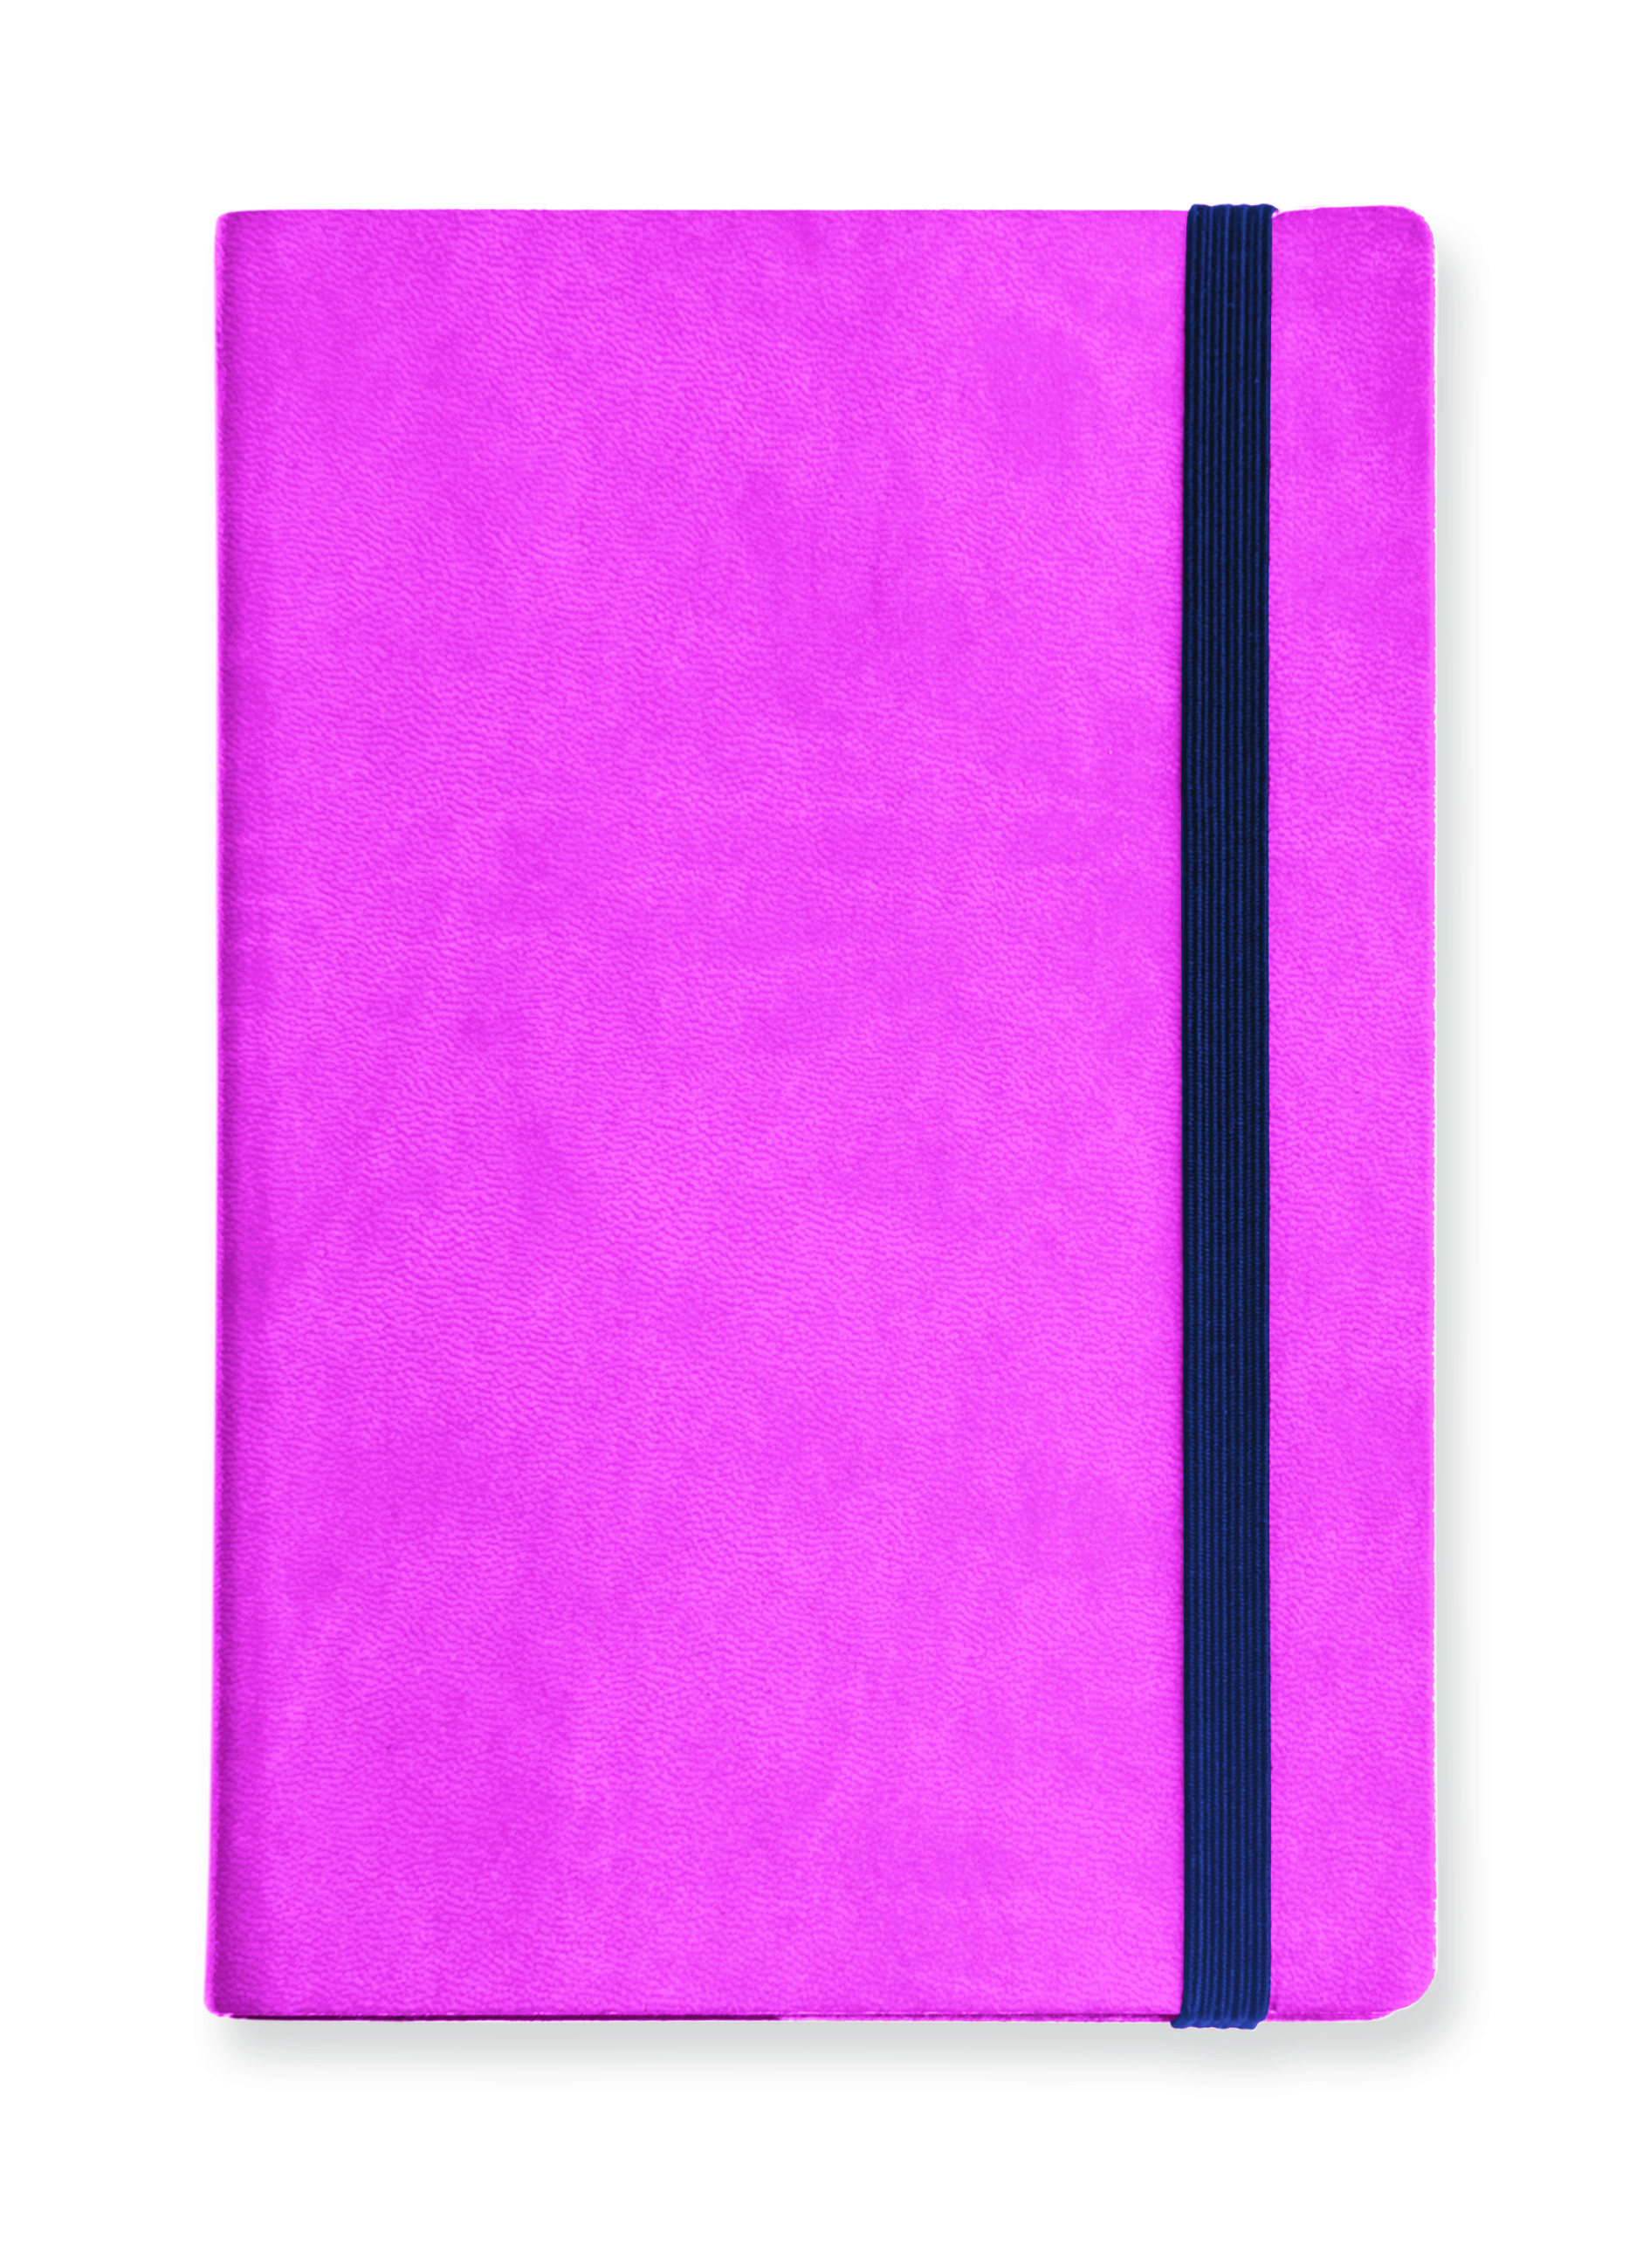 Image of My Notebook Small a pagine bianche. Magenta